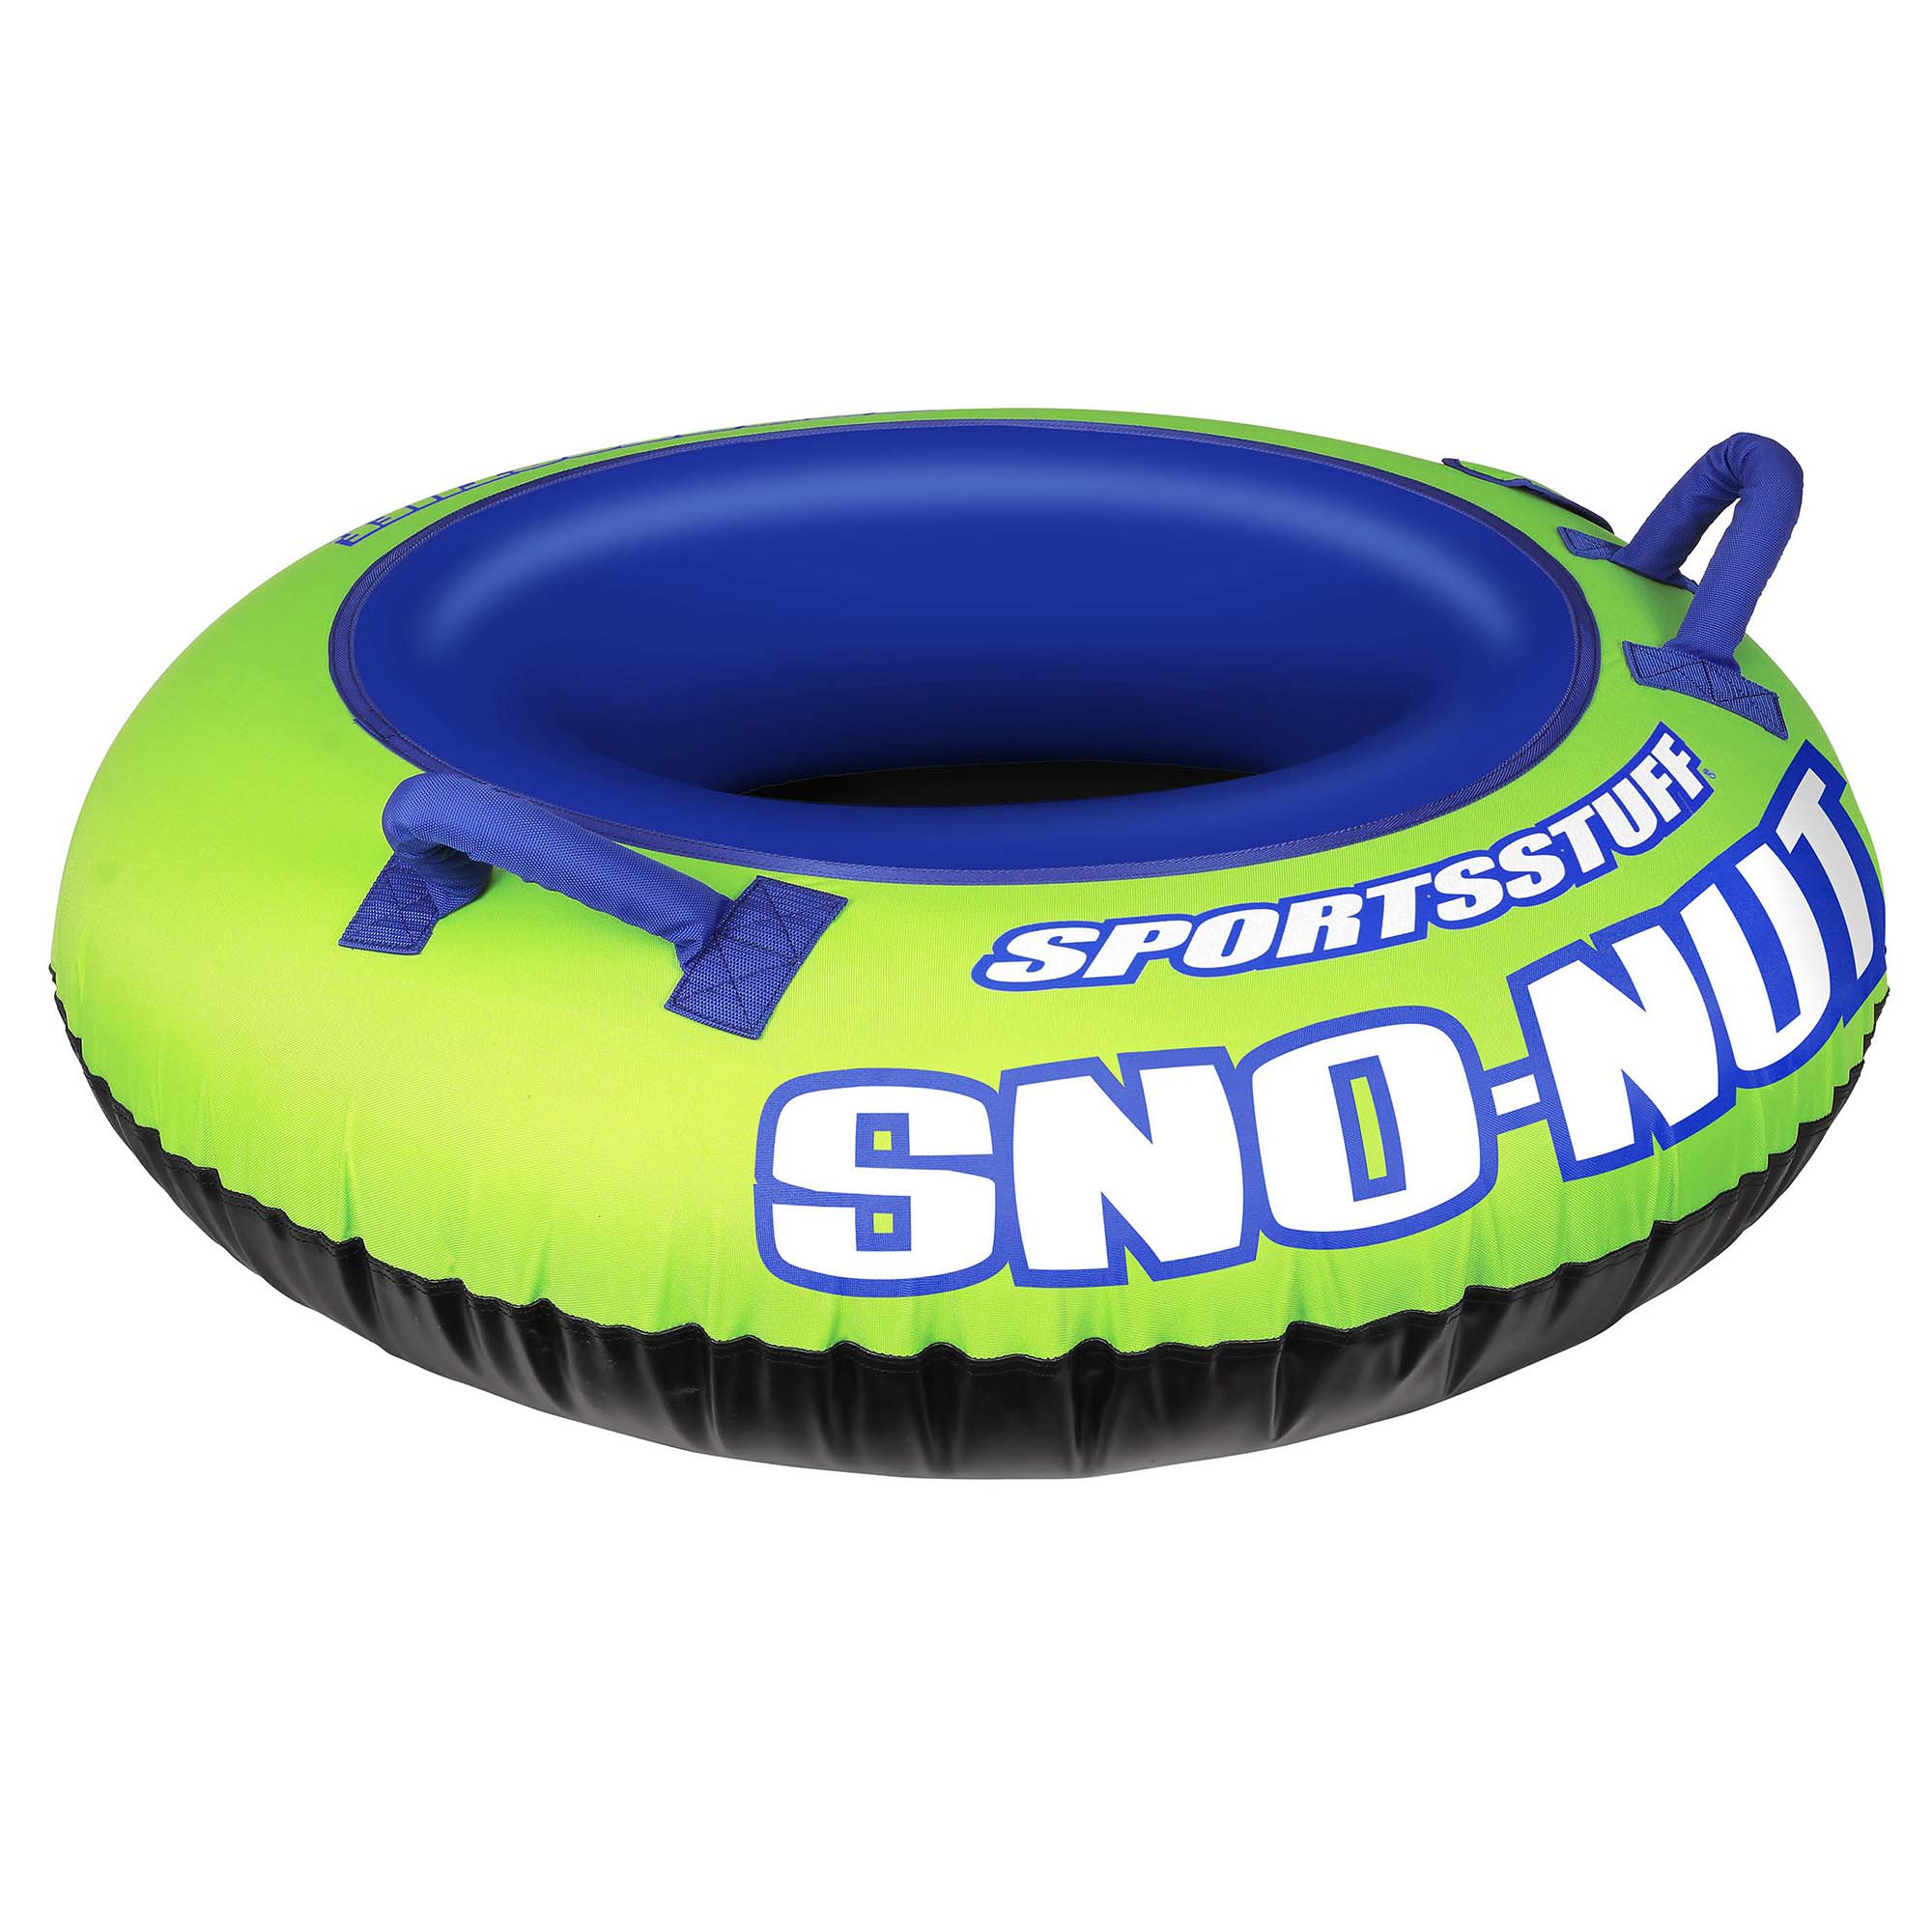 SNO-NUT Snow Tube by Kwik Tek